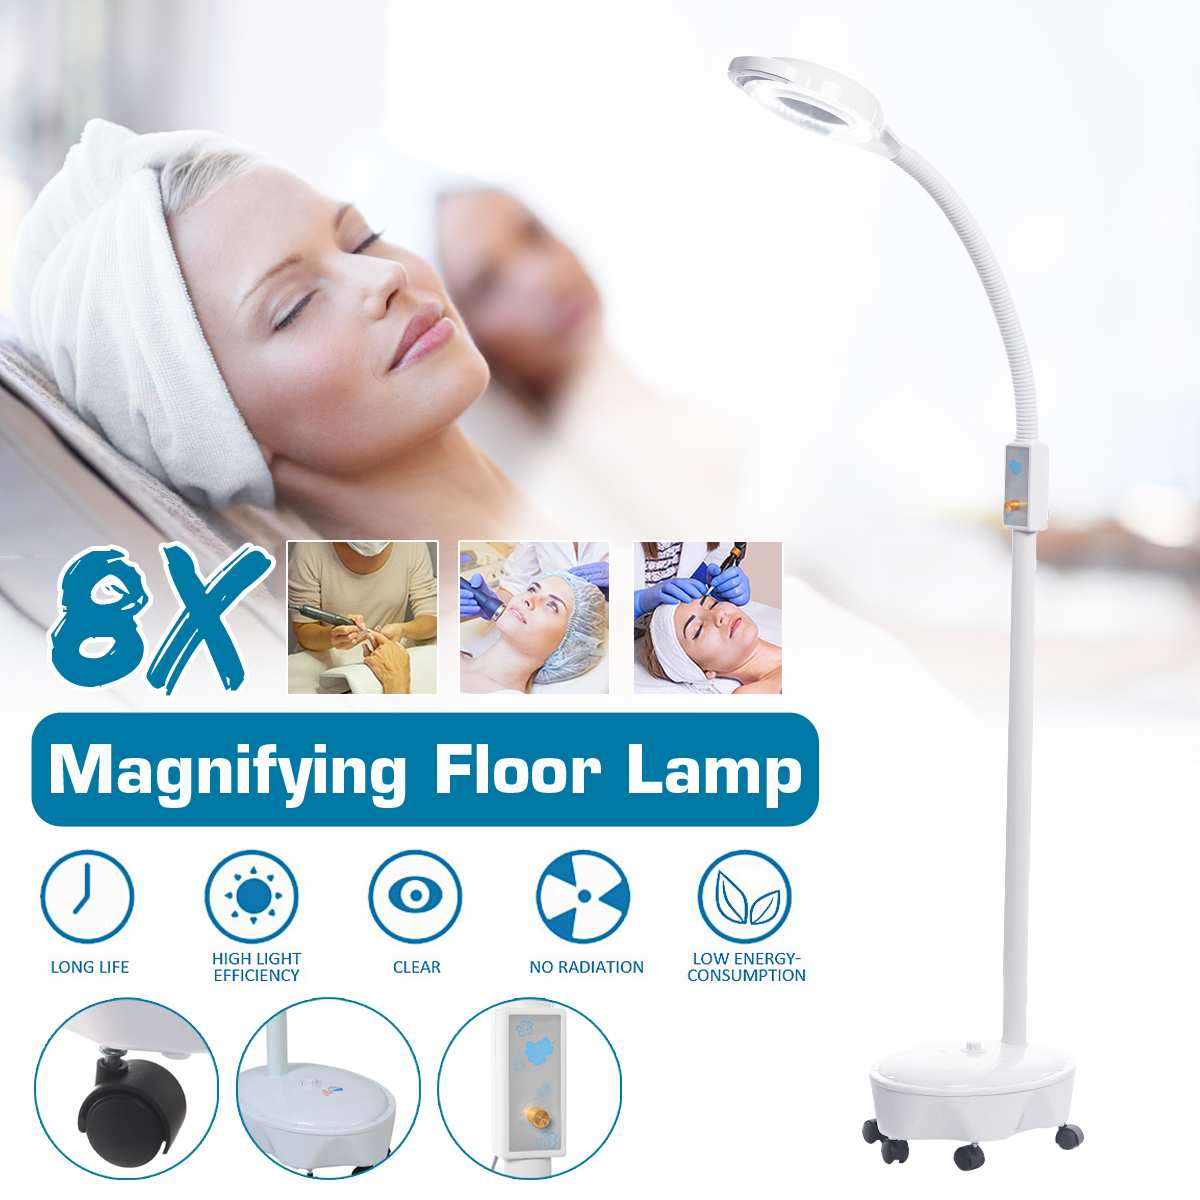 Pro 8X Diopter 120 LED Magnifying Floor Stand Lamp Magnifier Glass Cold Ligth Len Beauty Facial Light For Salon Nail Tattoo 220V